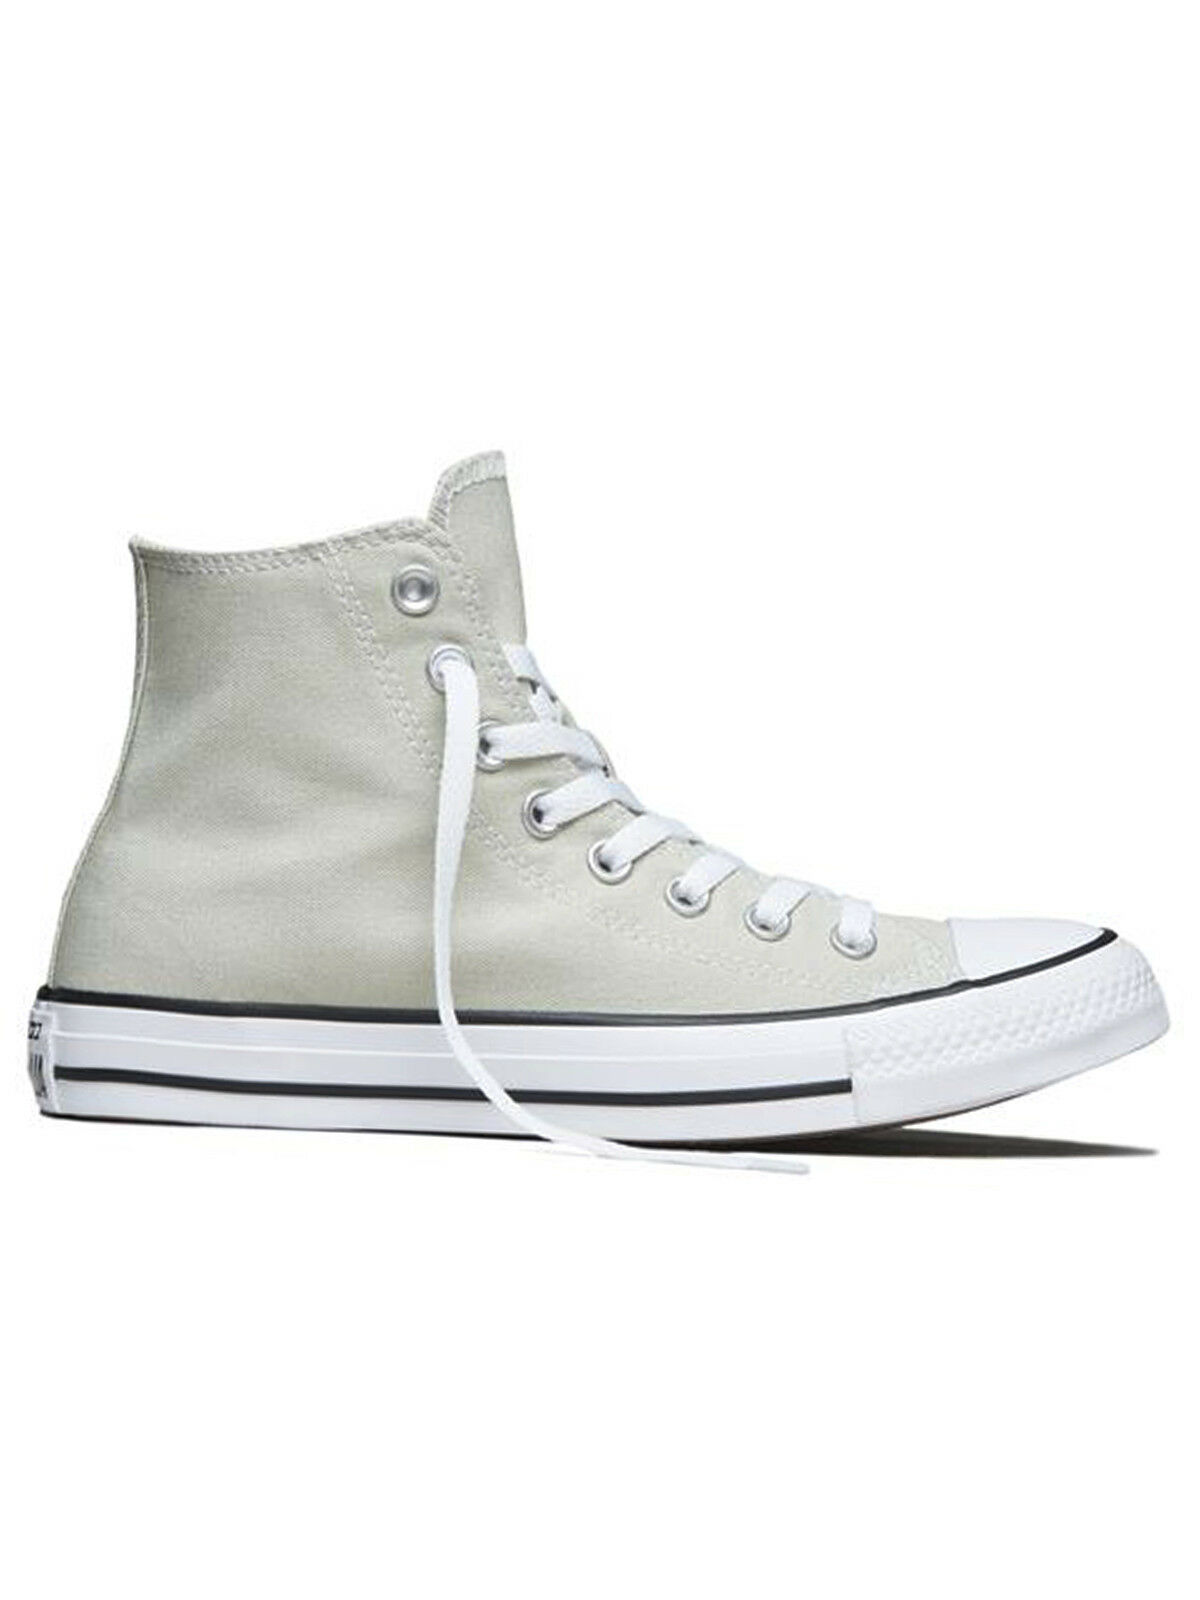 Chuck Taylor Top All Star Hi Top Taylor Seasonal 155565C 66c07f